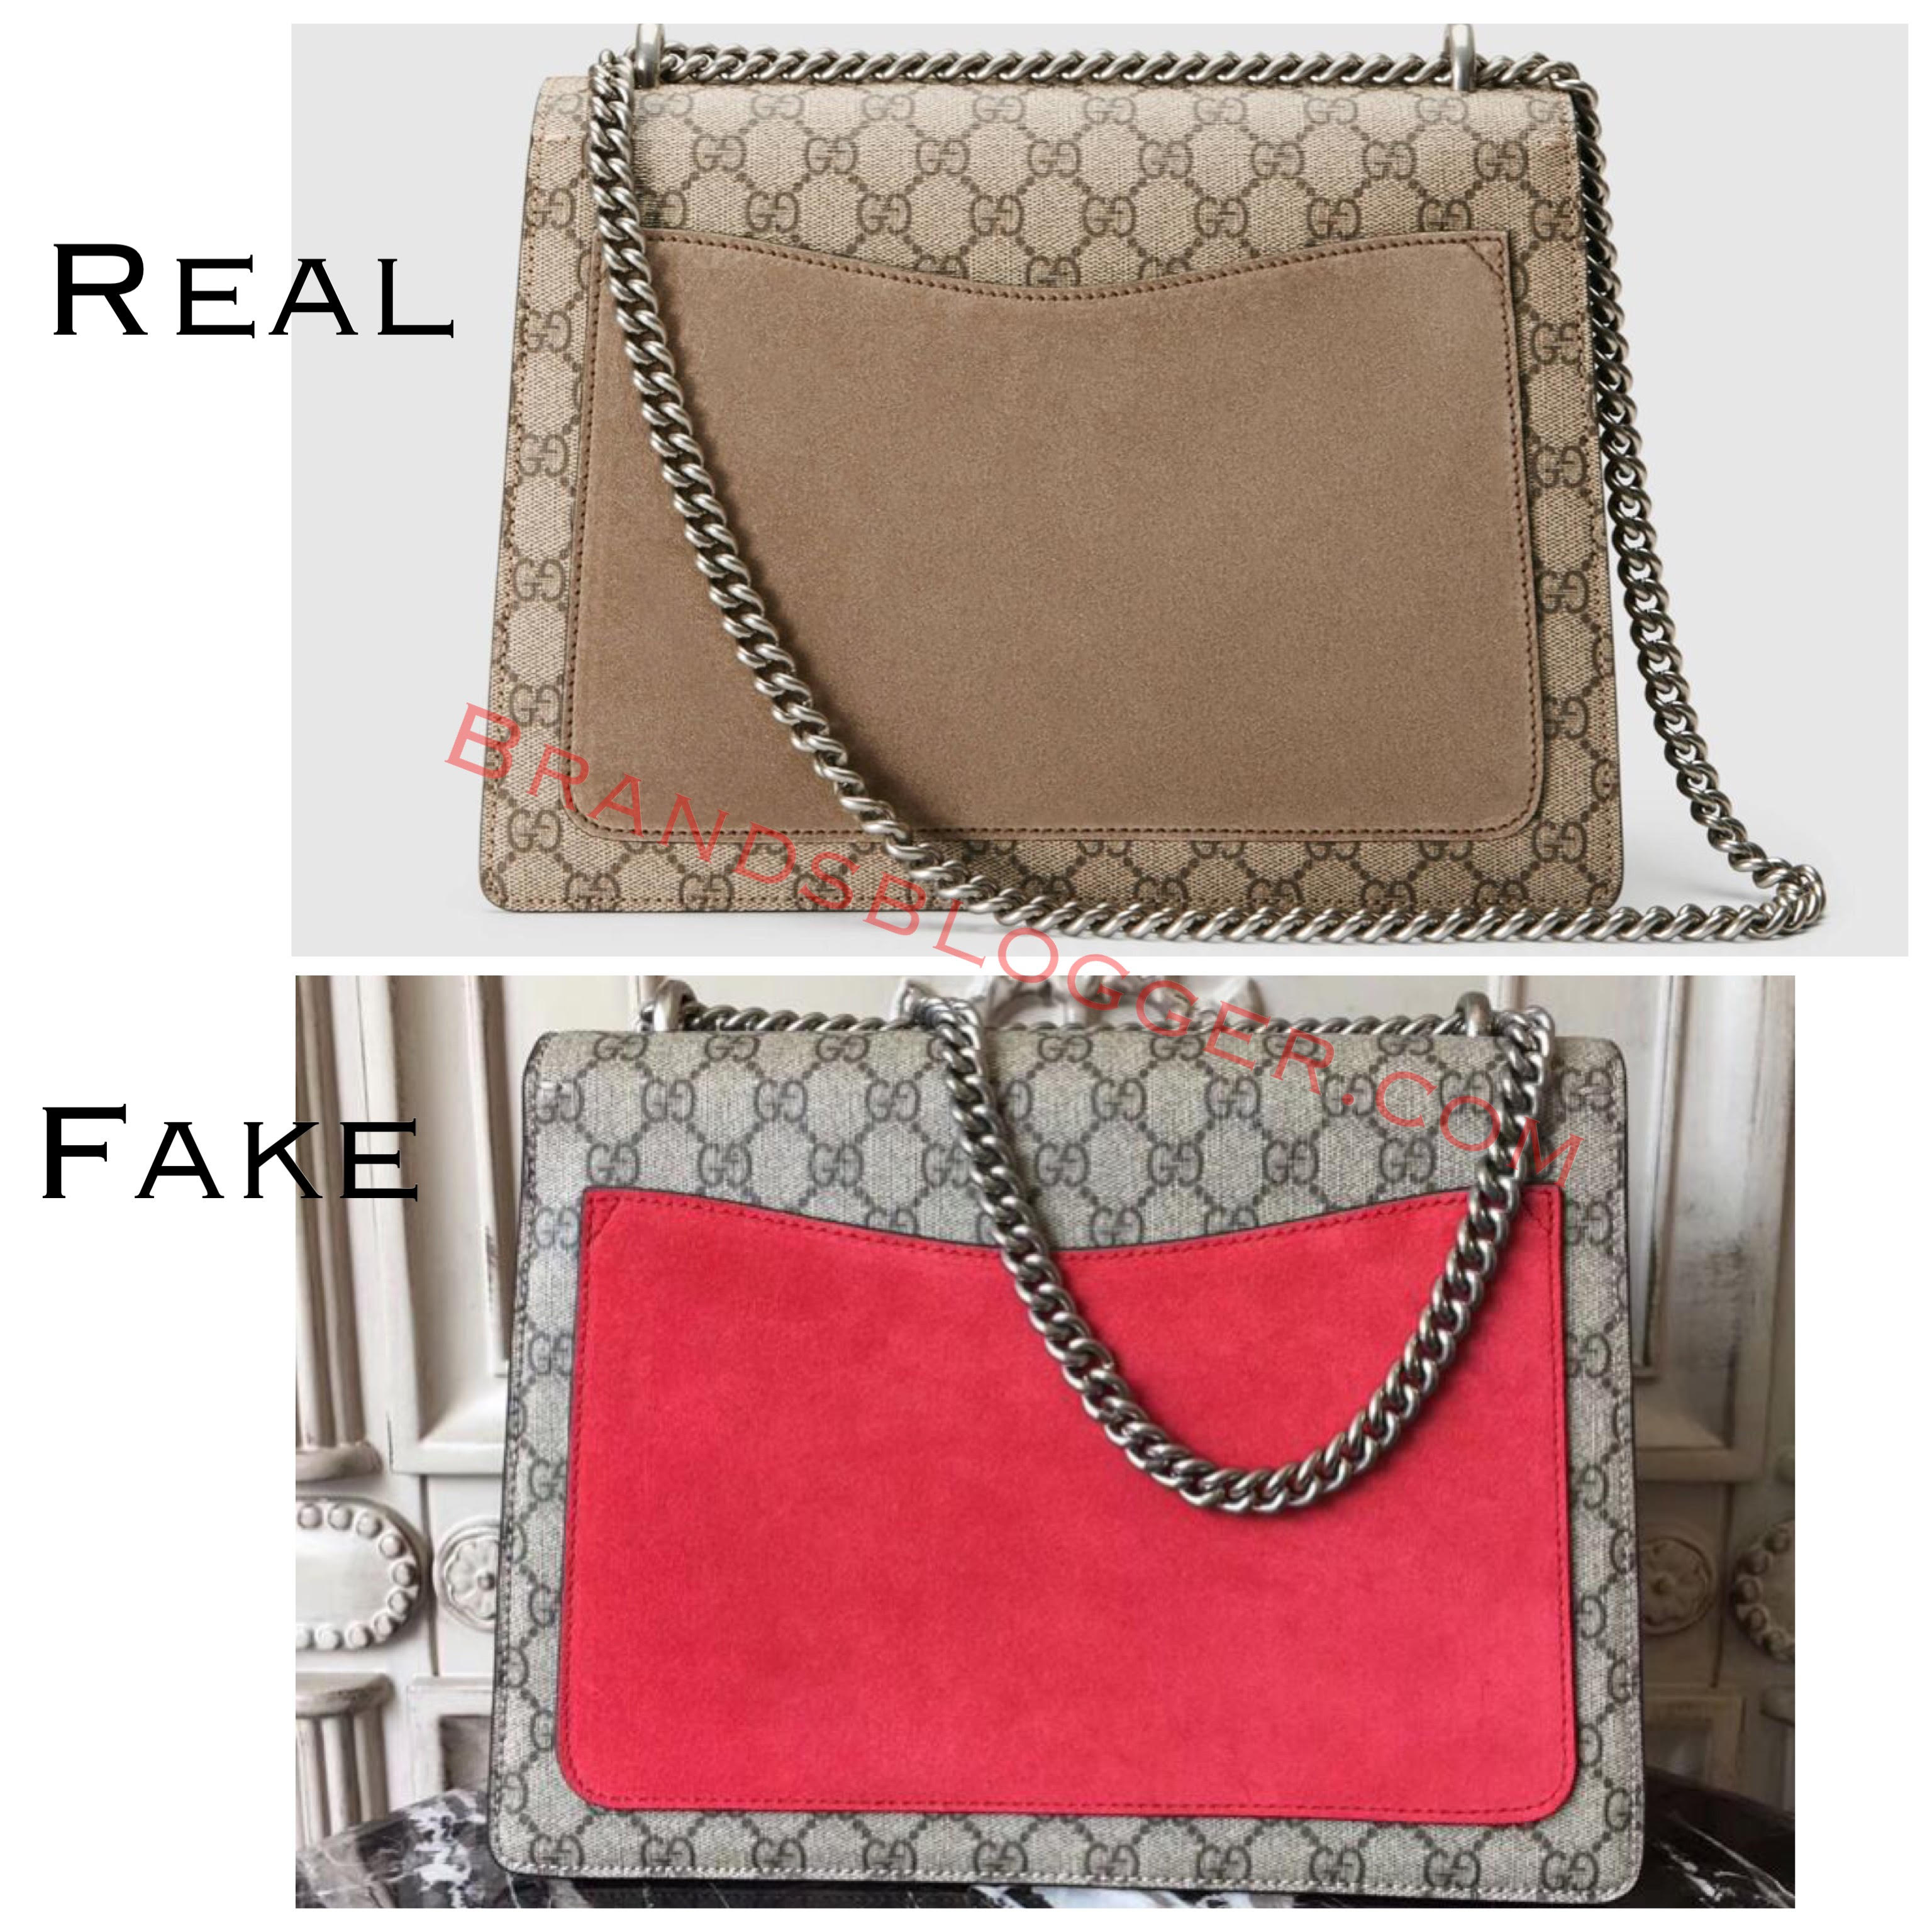 98c5acd1a How To Spot A Fake Gucci Dionysus Bag - Brands Blogger